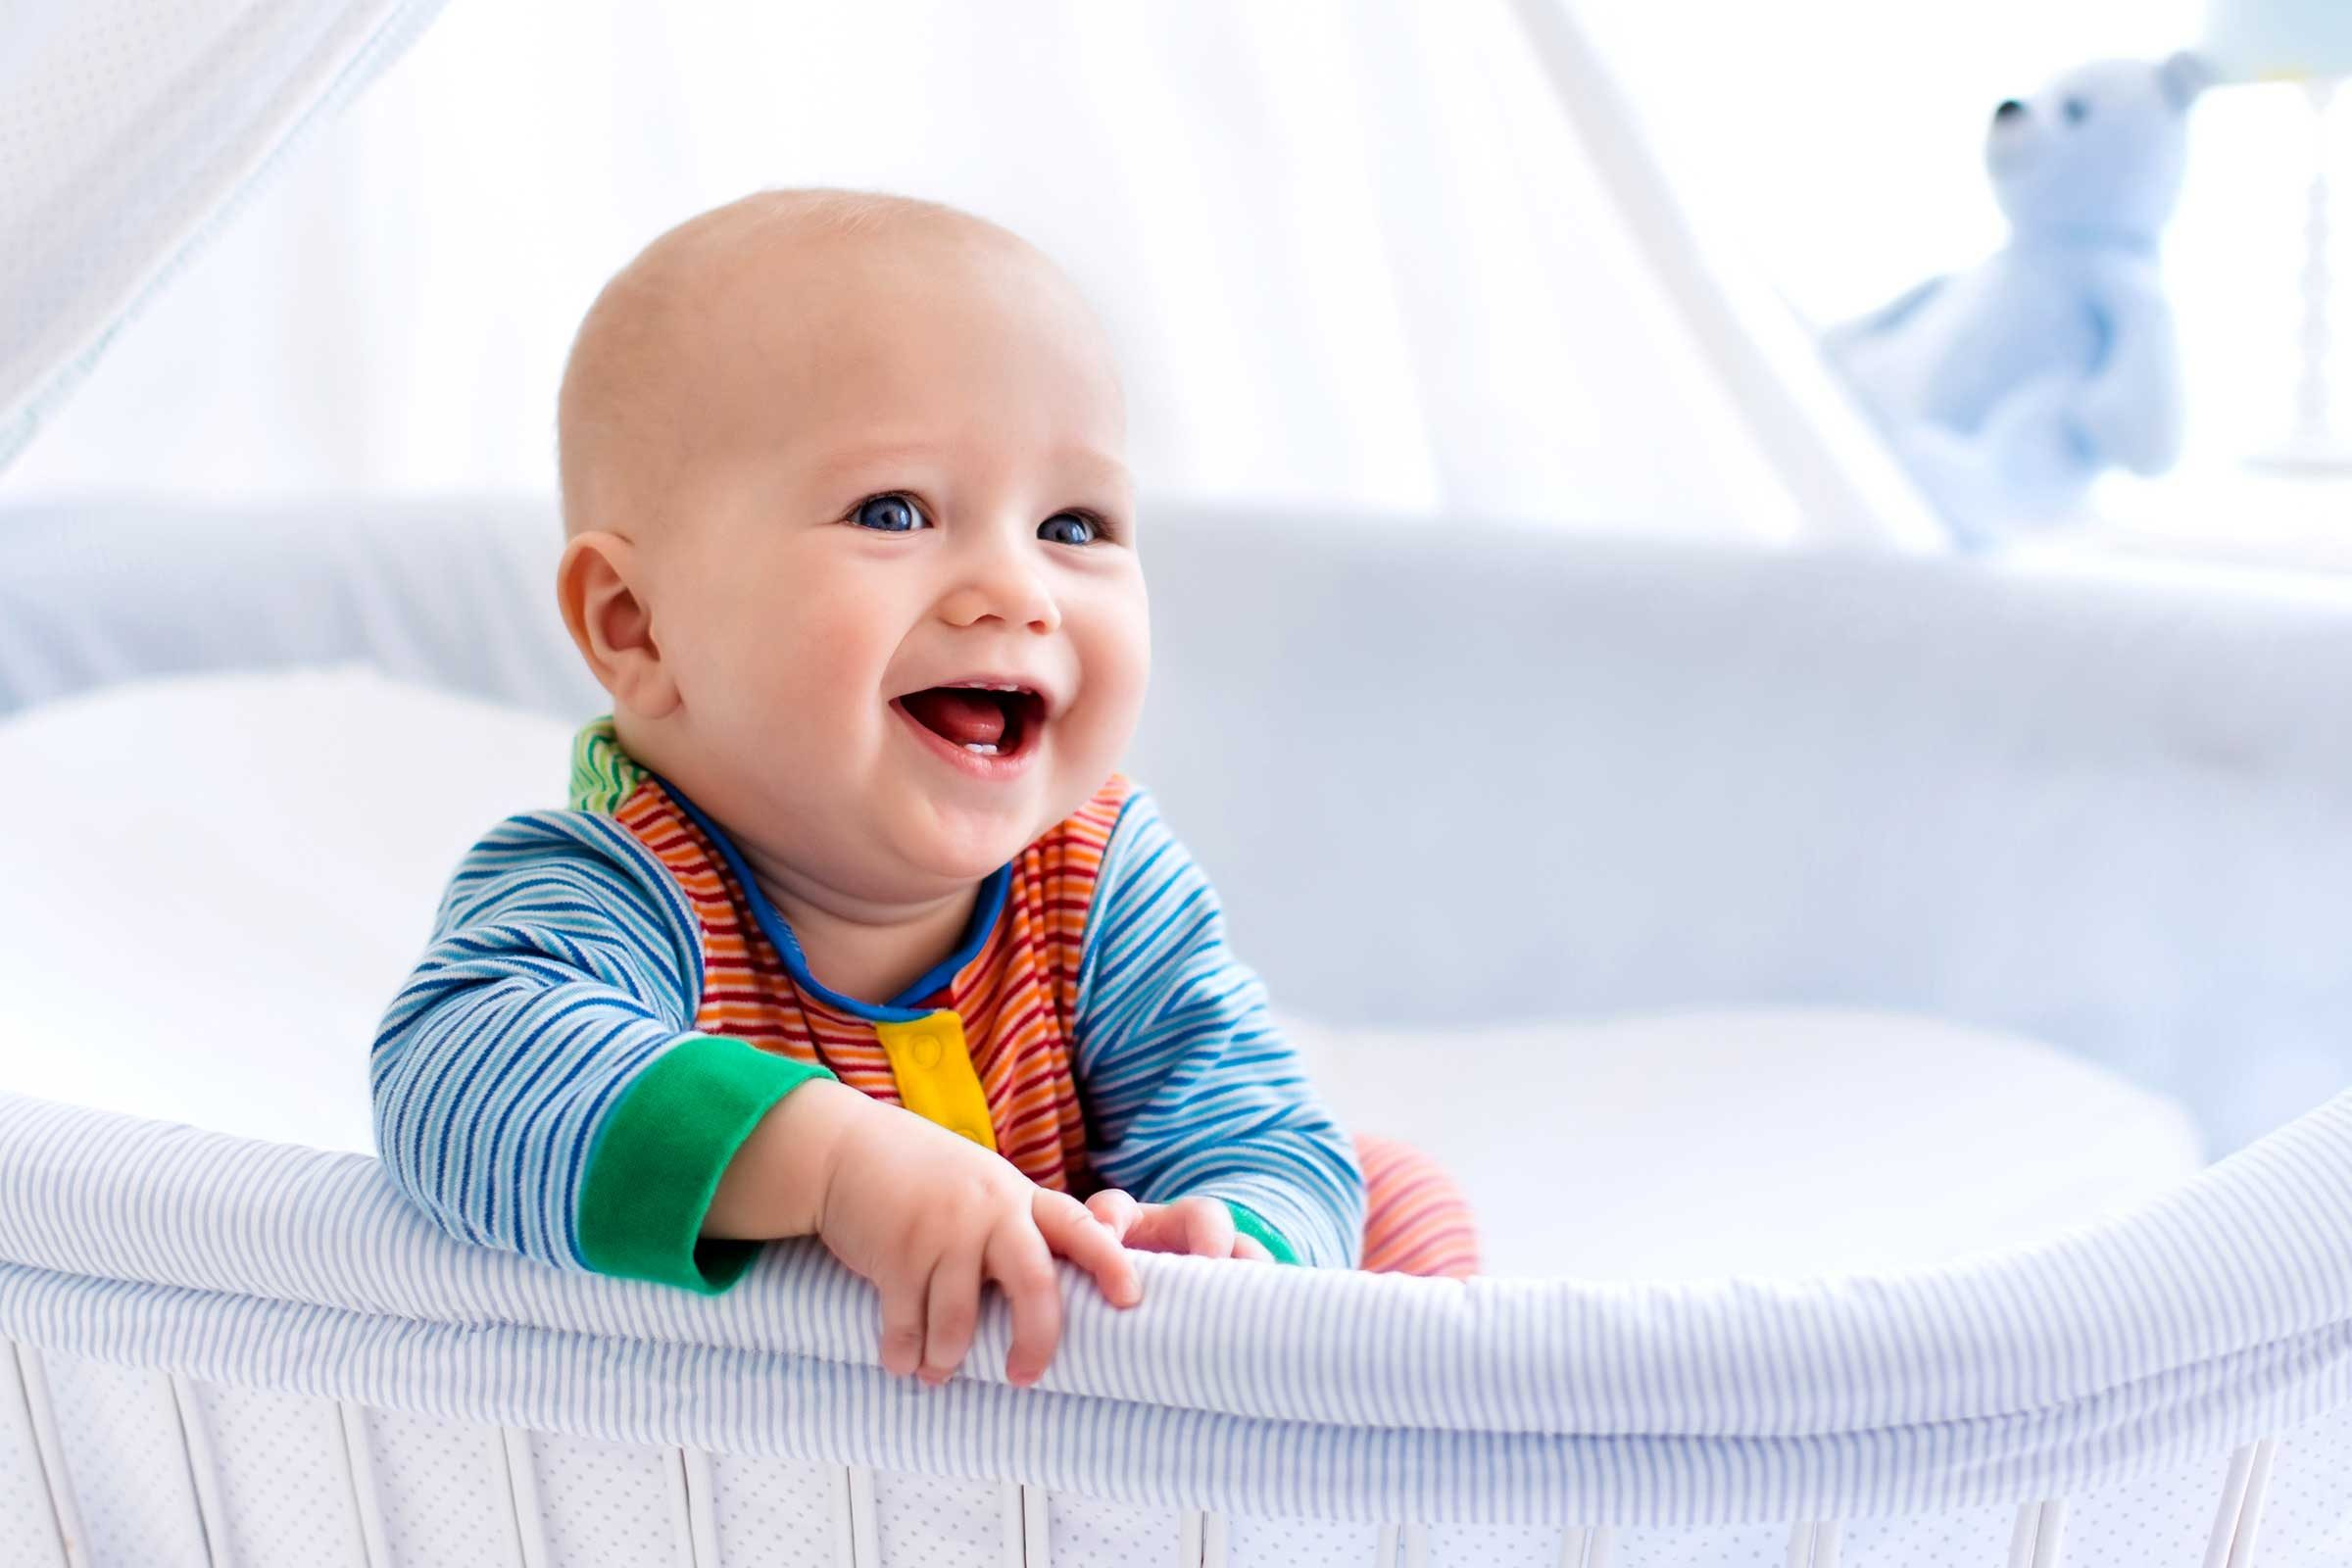 Cute Baby Boy Pic: Signs Your Baby Trusts You